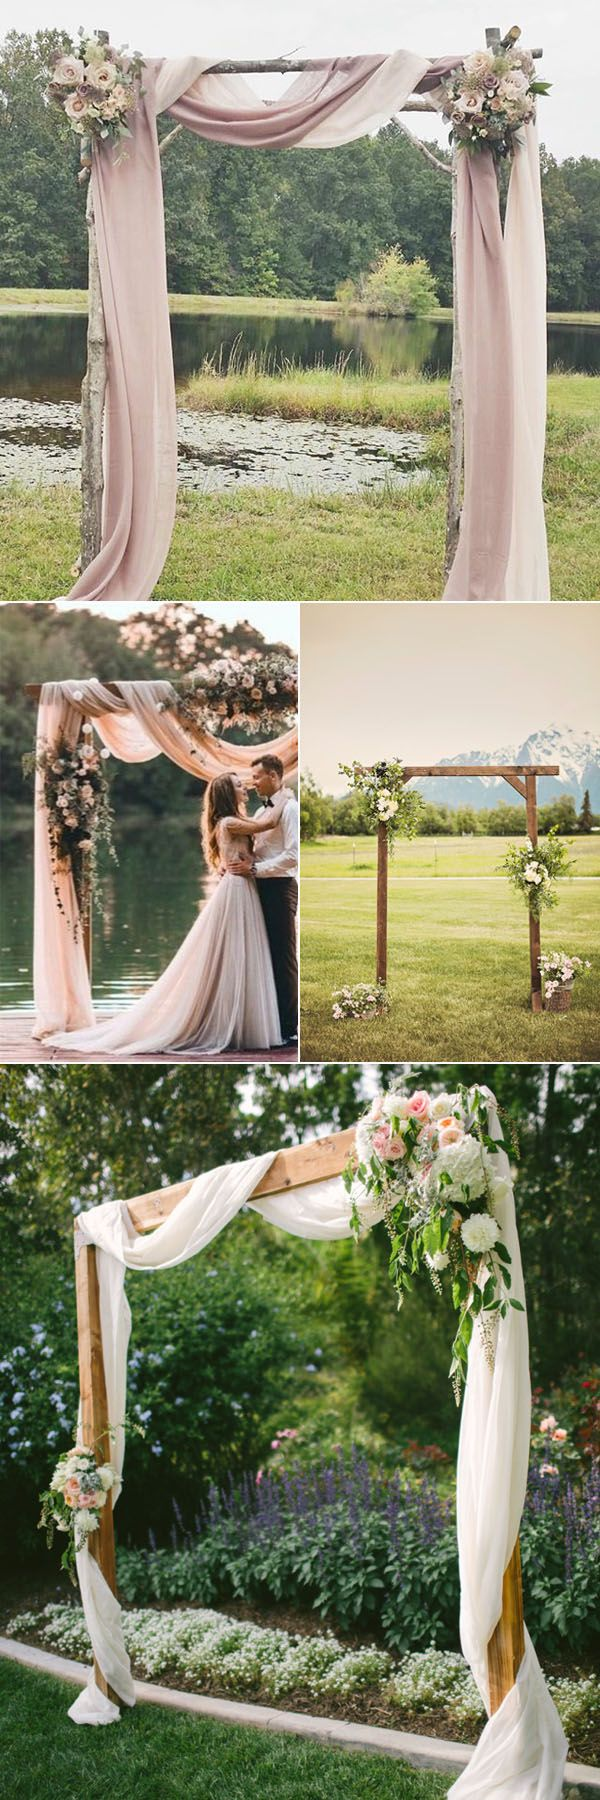 best 20+ outdoor weddings ideas on pinterest | outdoor rustic